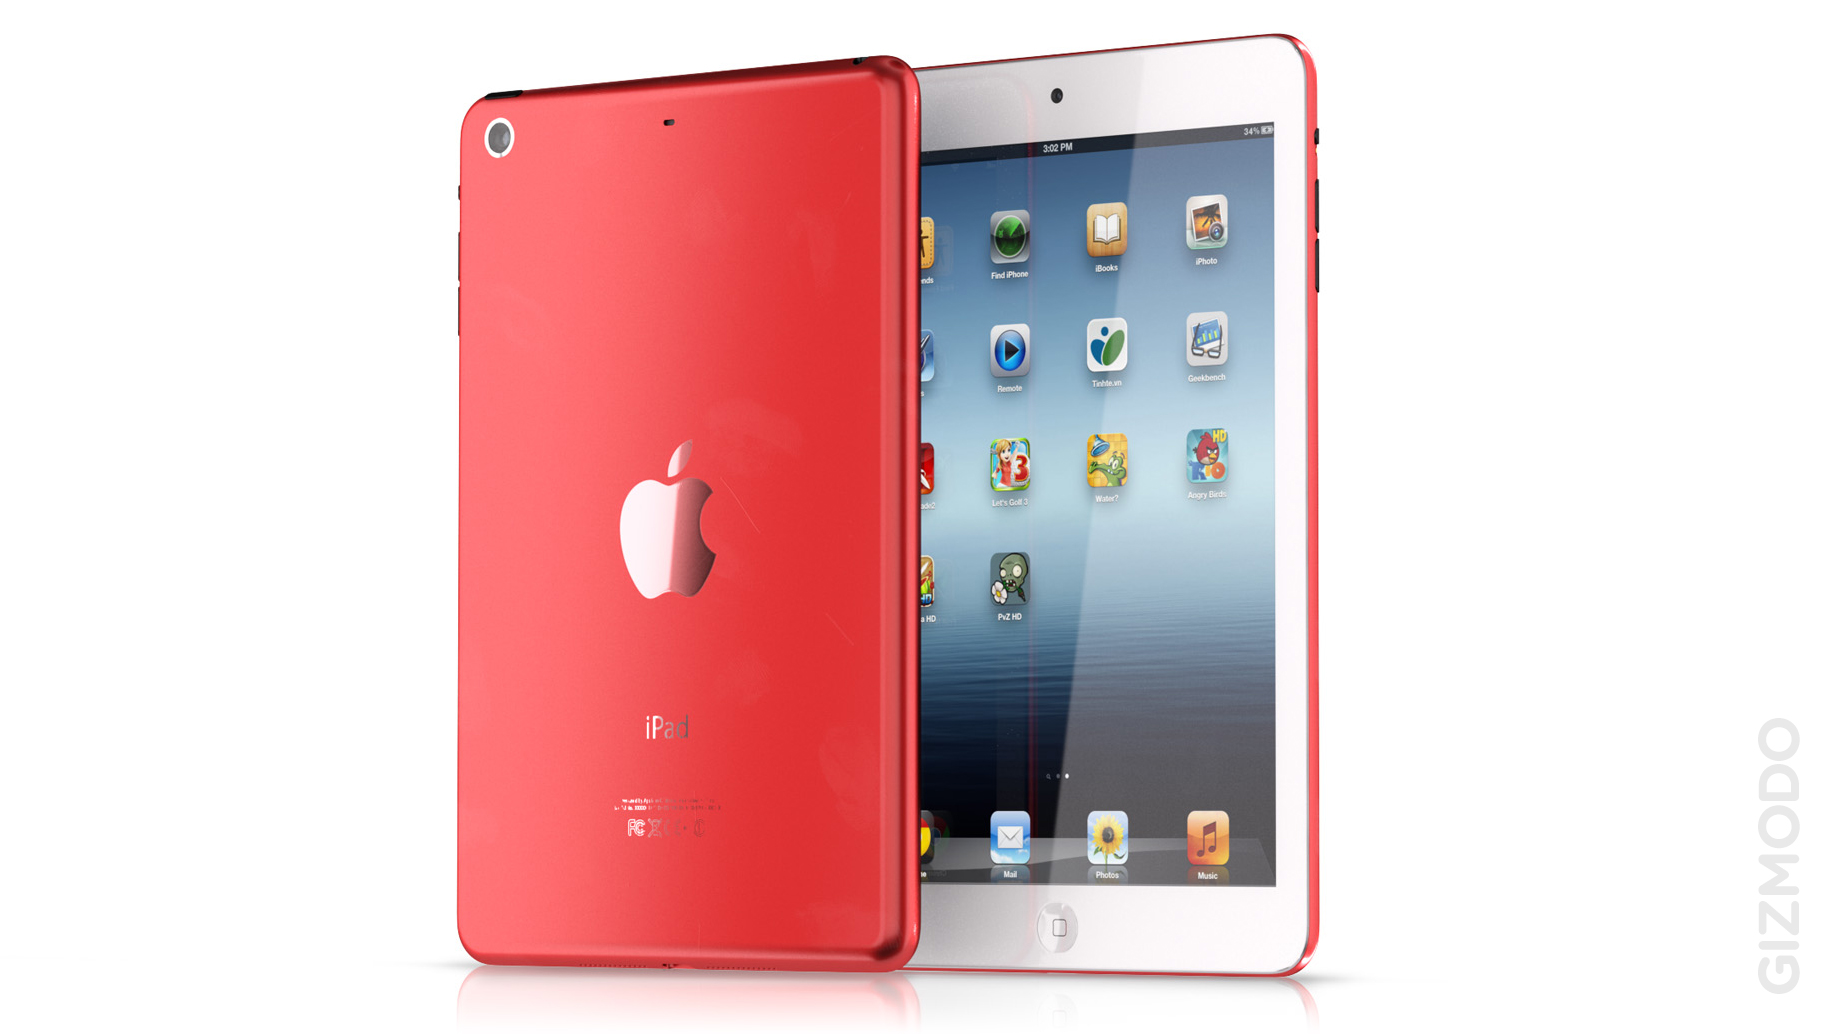 Click here to read The More I Look at It, the More I Want a Color iPad Mini